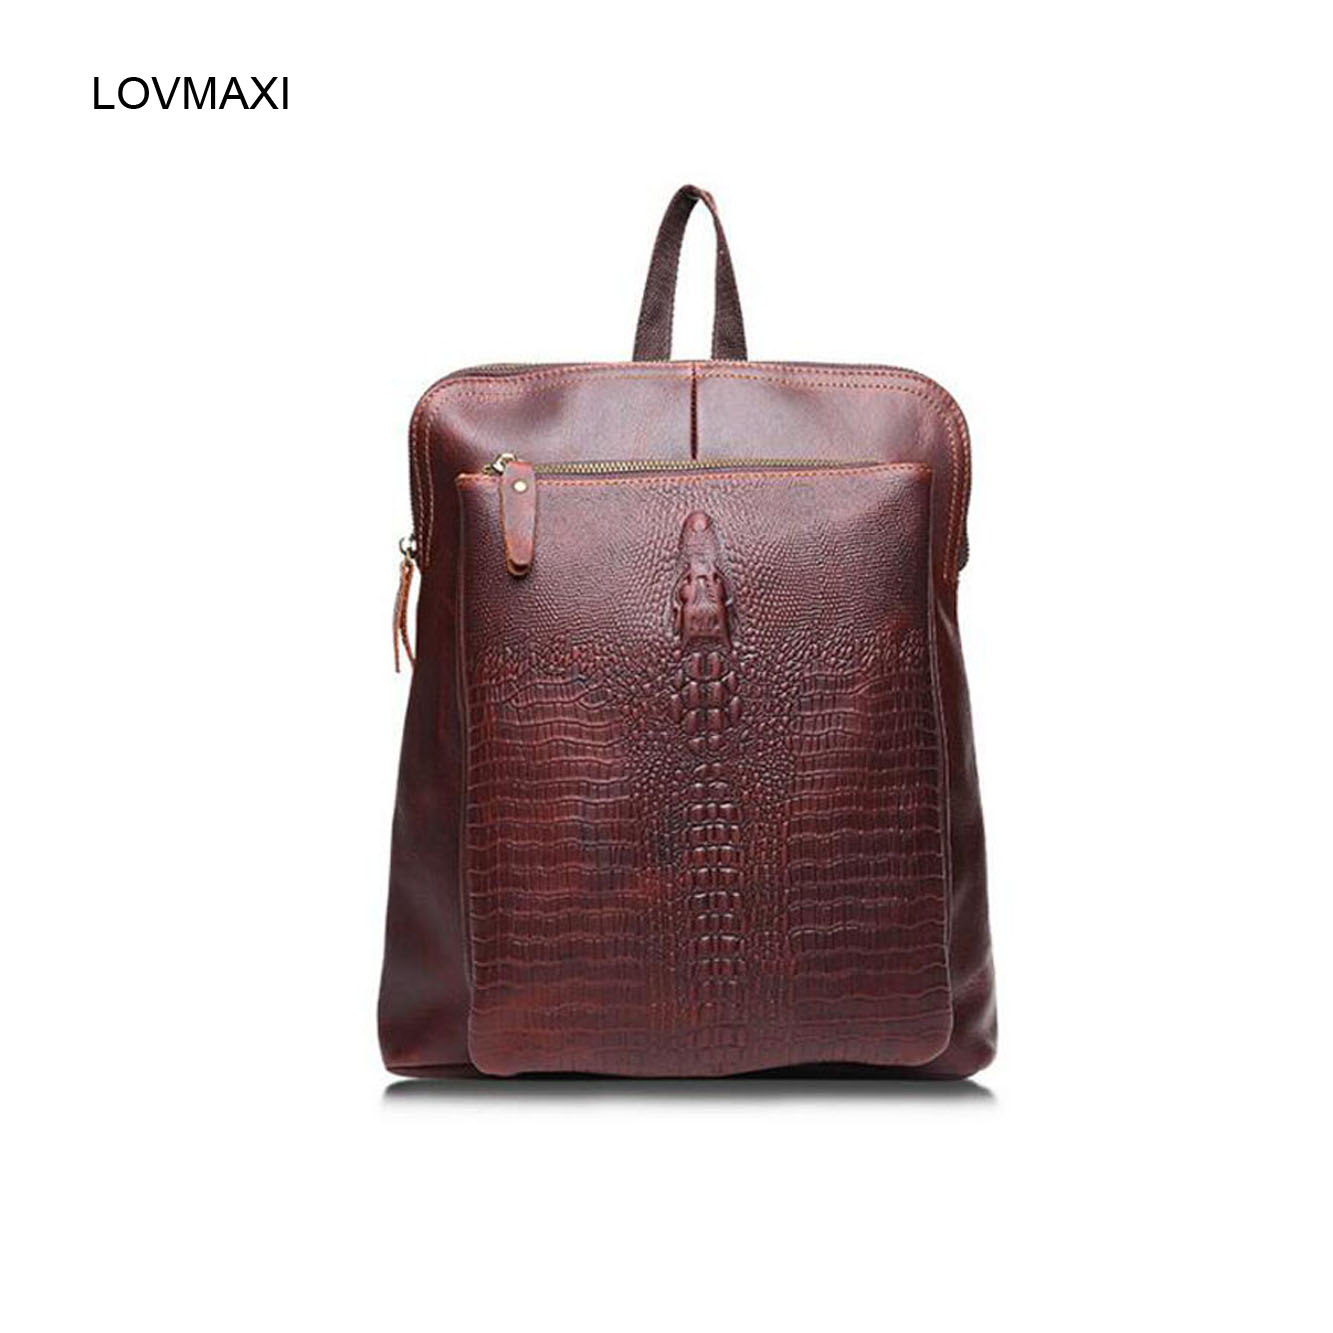 ФОТО 2017 hot Lady leather backpacks Vintage crocodile head embossed first layer of genuine leather shoulder bag fashion causal bags